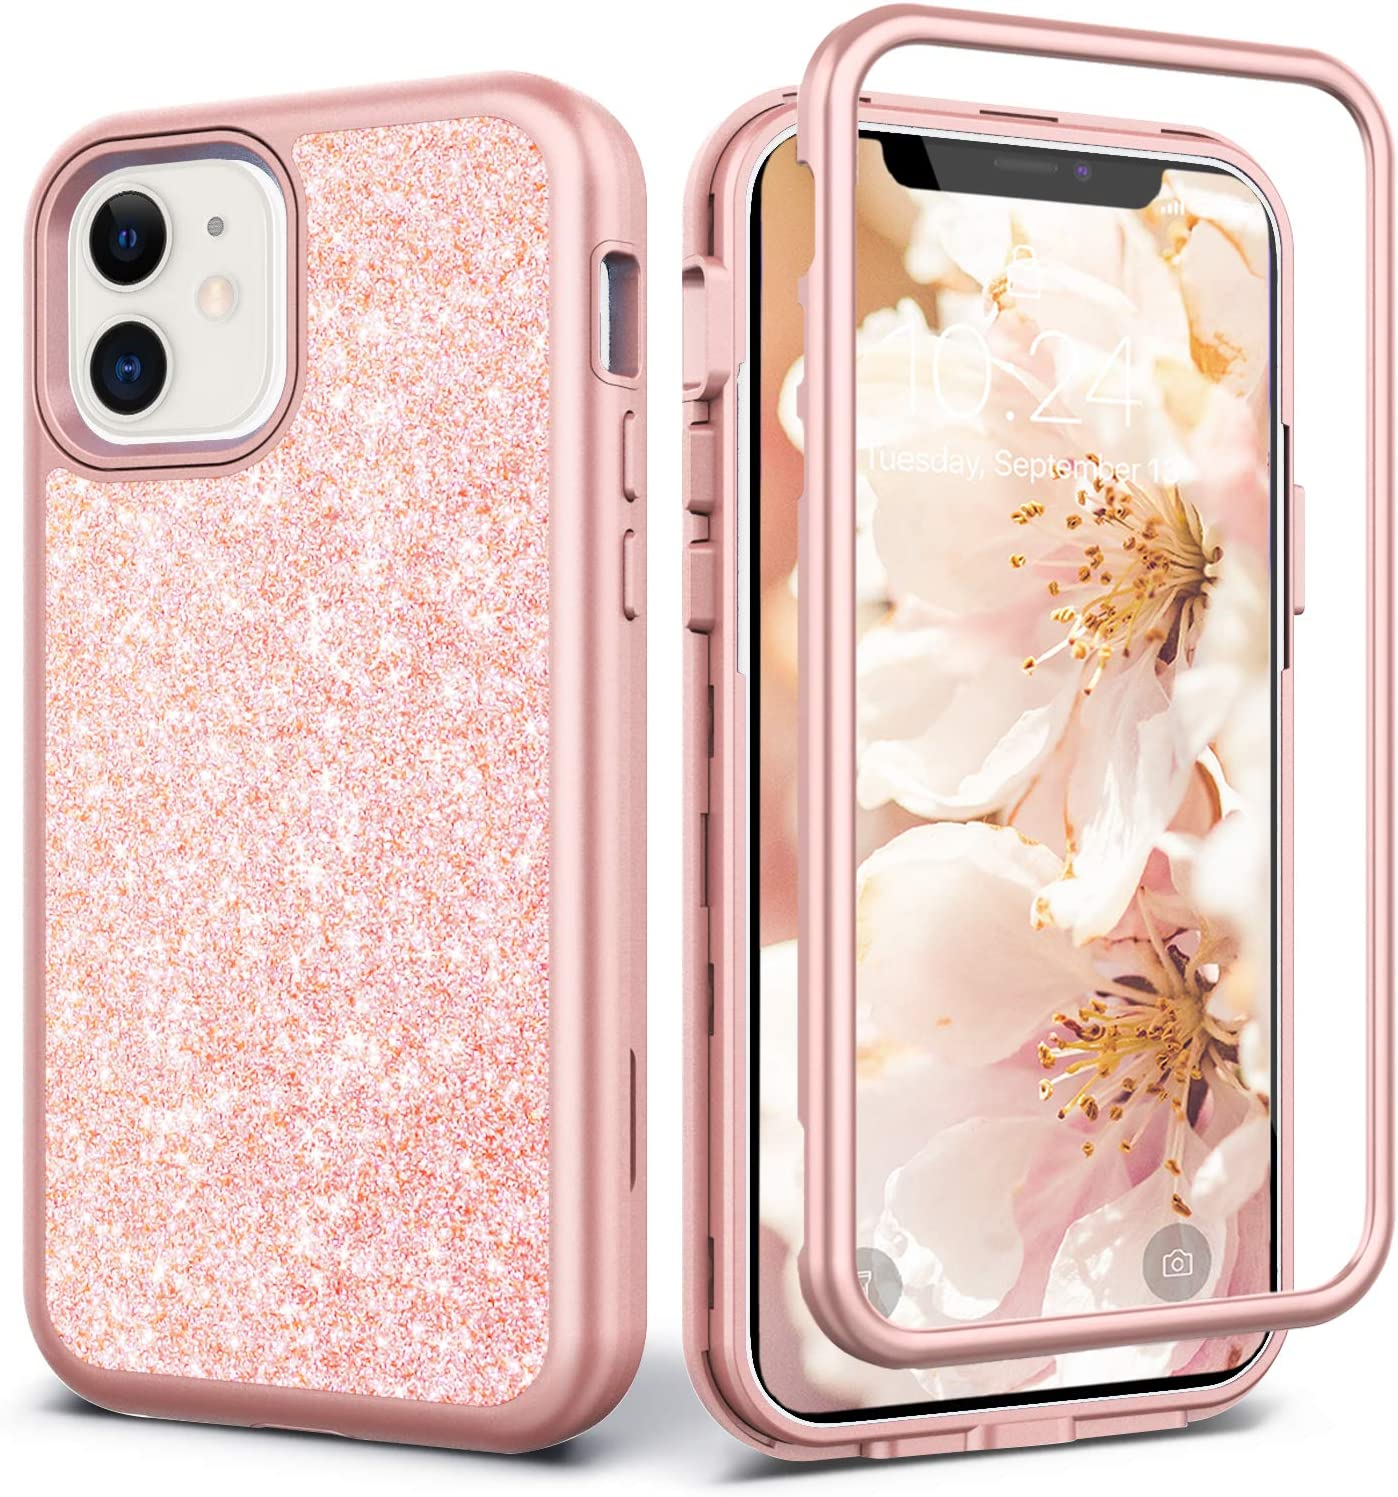 Coolwee Glitter Full Protective Case Compatible with iPhone 12, Compatible with iPhone 12 Pro Heavy Duty Hybrid 3 in 1 Rugged Shockproof Women Girls Rose Gold for Apple iPhone 12 Pro 6.1 inch